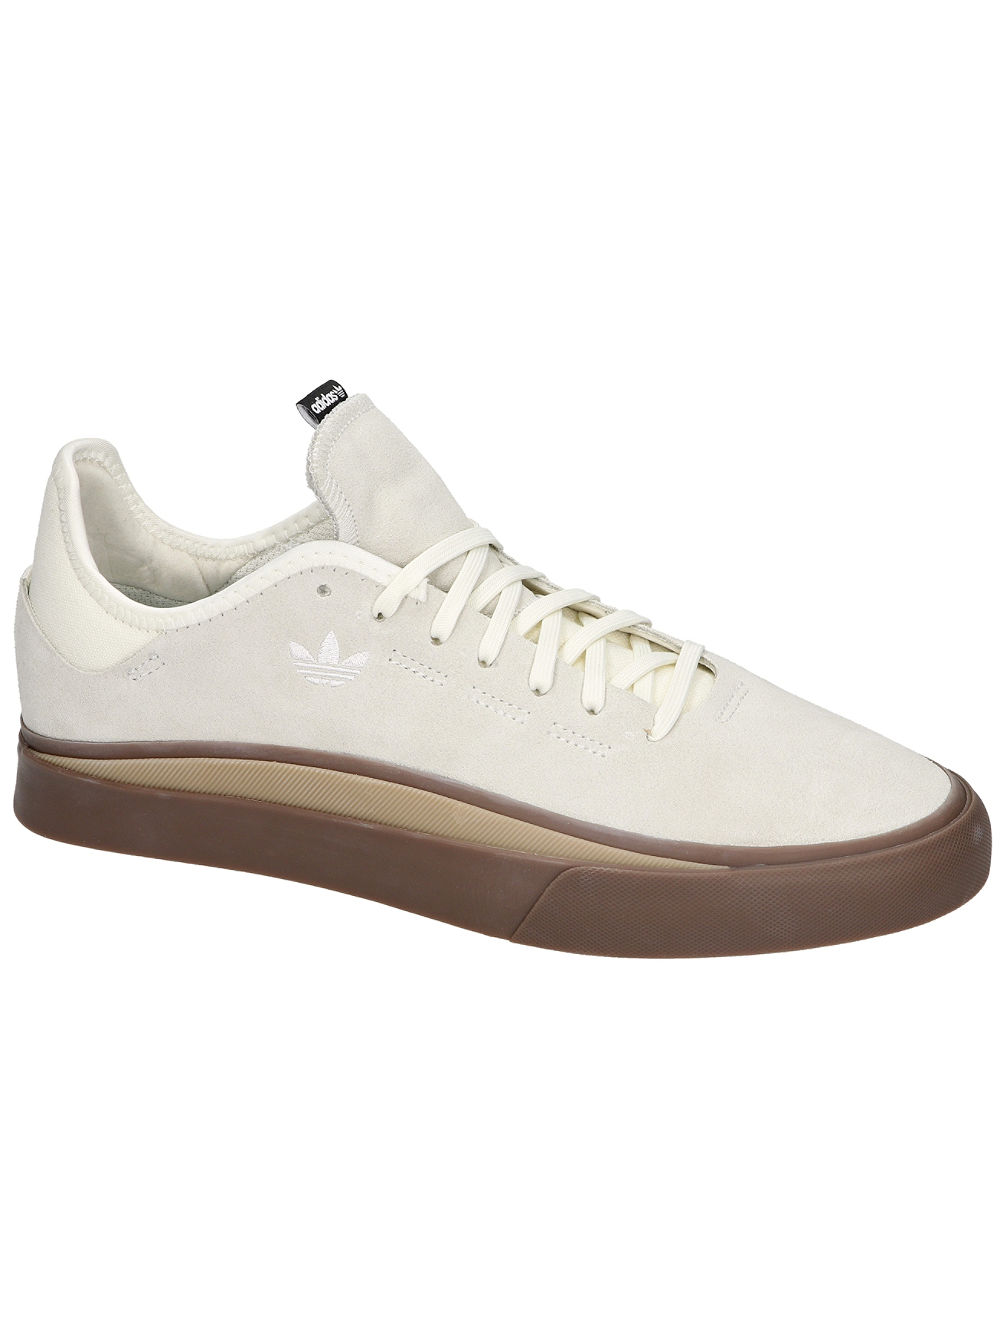 newest ef9e4 d6a45 Buy adidas Skateboarding Sabalo Skate Shoes online at Blue Tomato